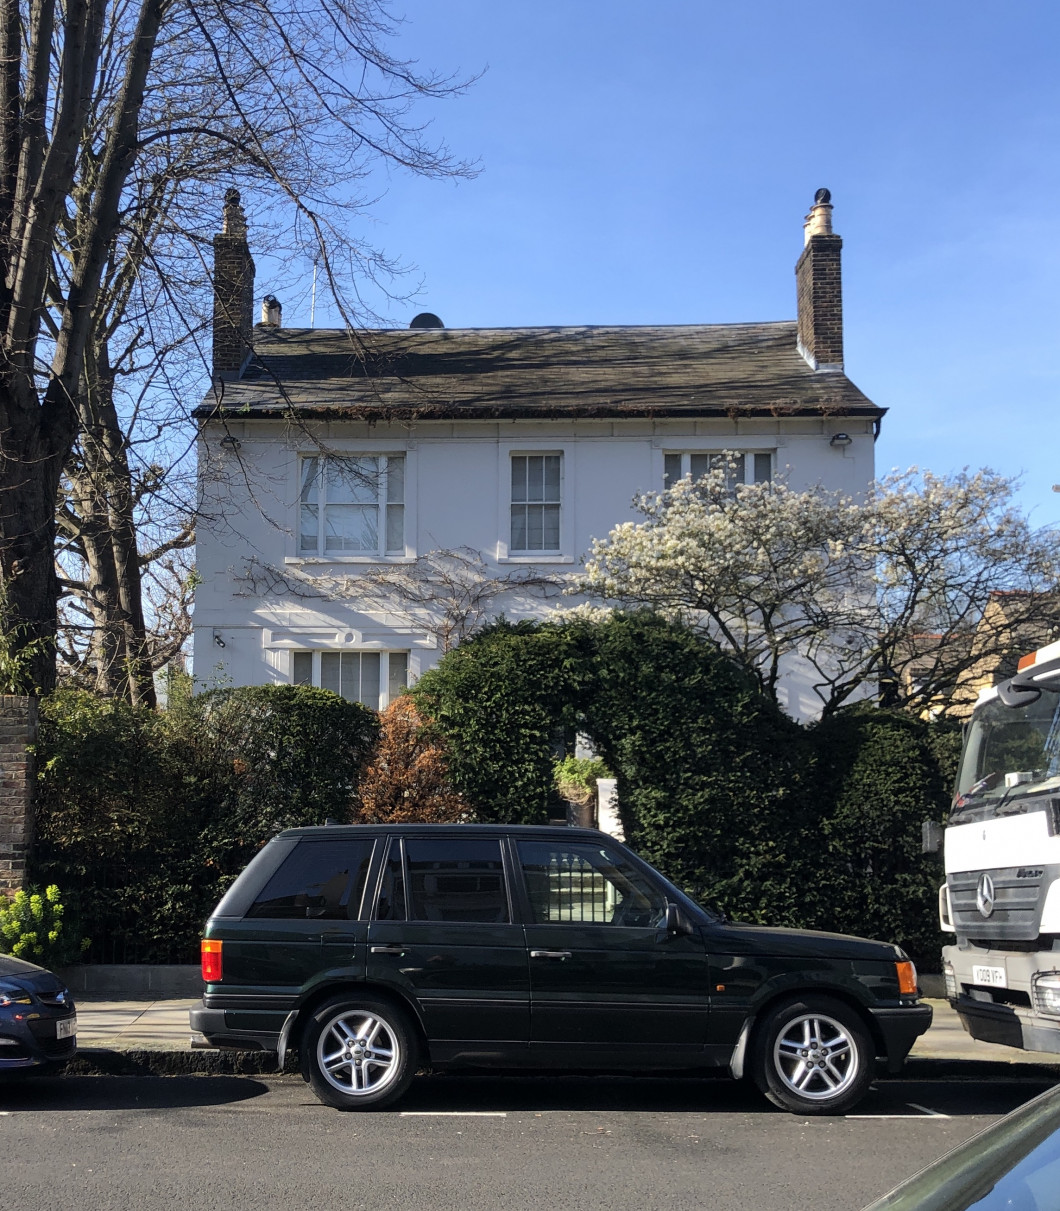 EXCLUSIVE: Lewis Hamilton wins planning permission for controversial extension at £18m London home he's never even set foot in - despite opposition from artists led by David Hockney